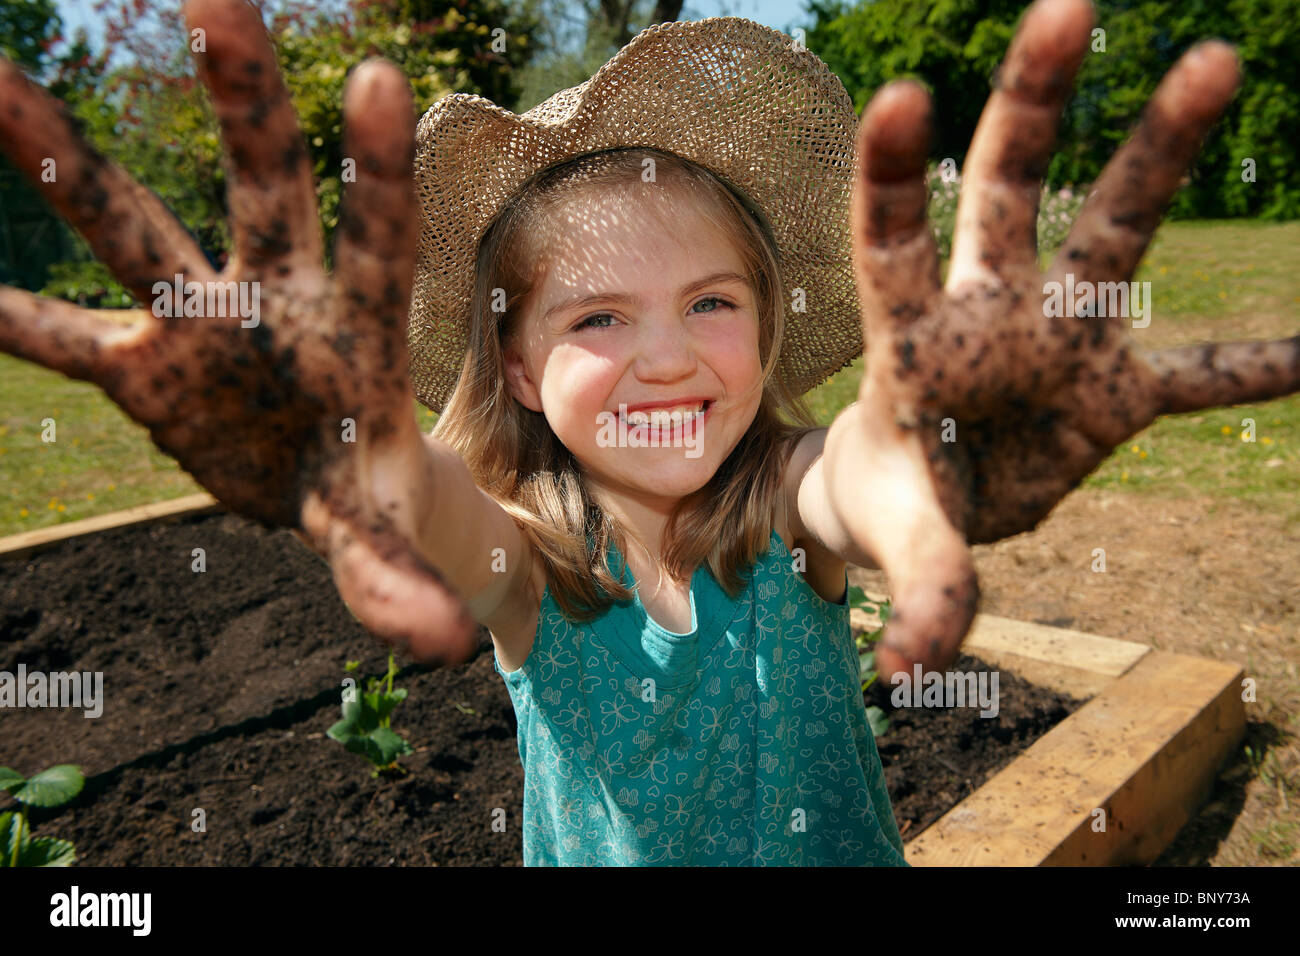 Young girl in garden with muddy hands Stock Photo: 30716430 - Alamy